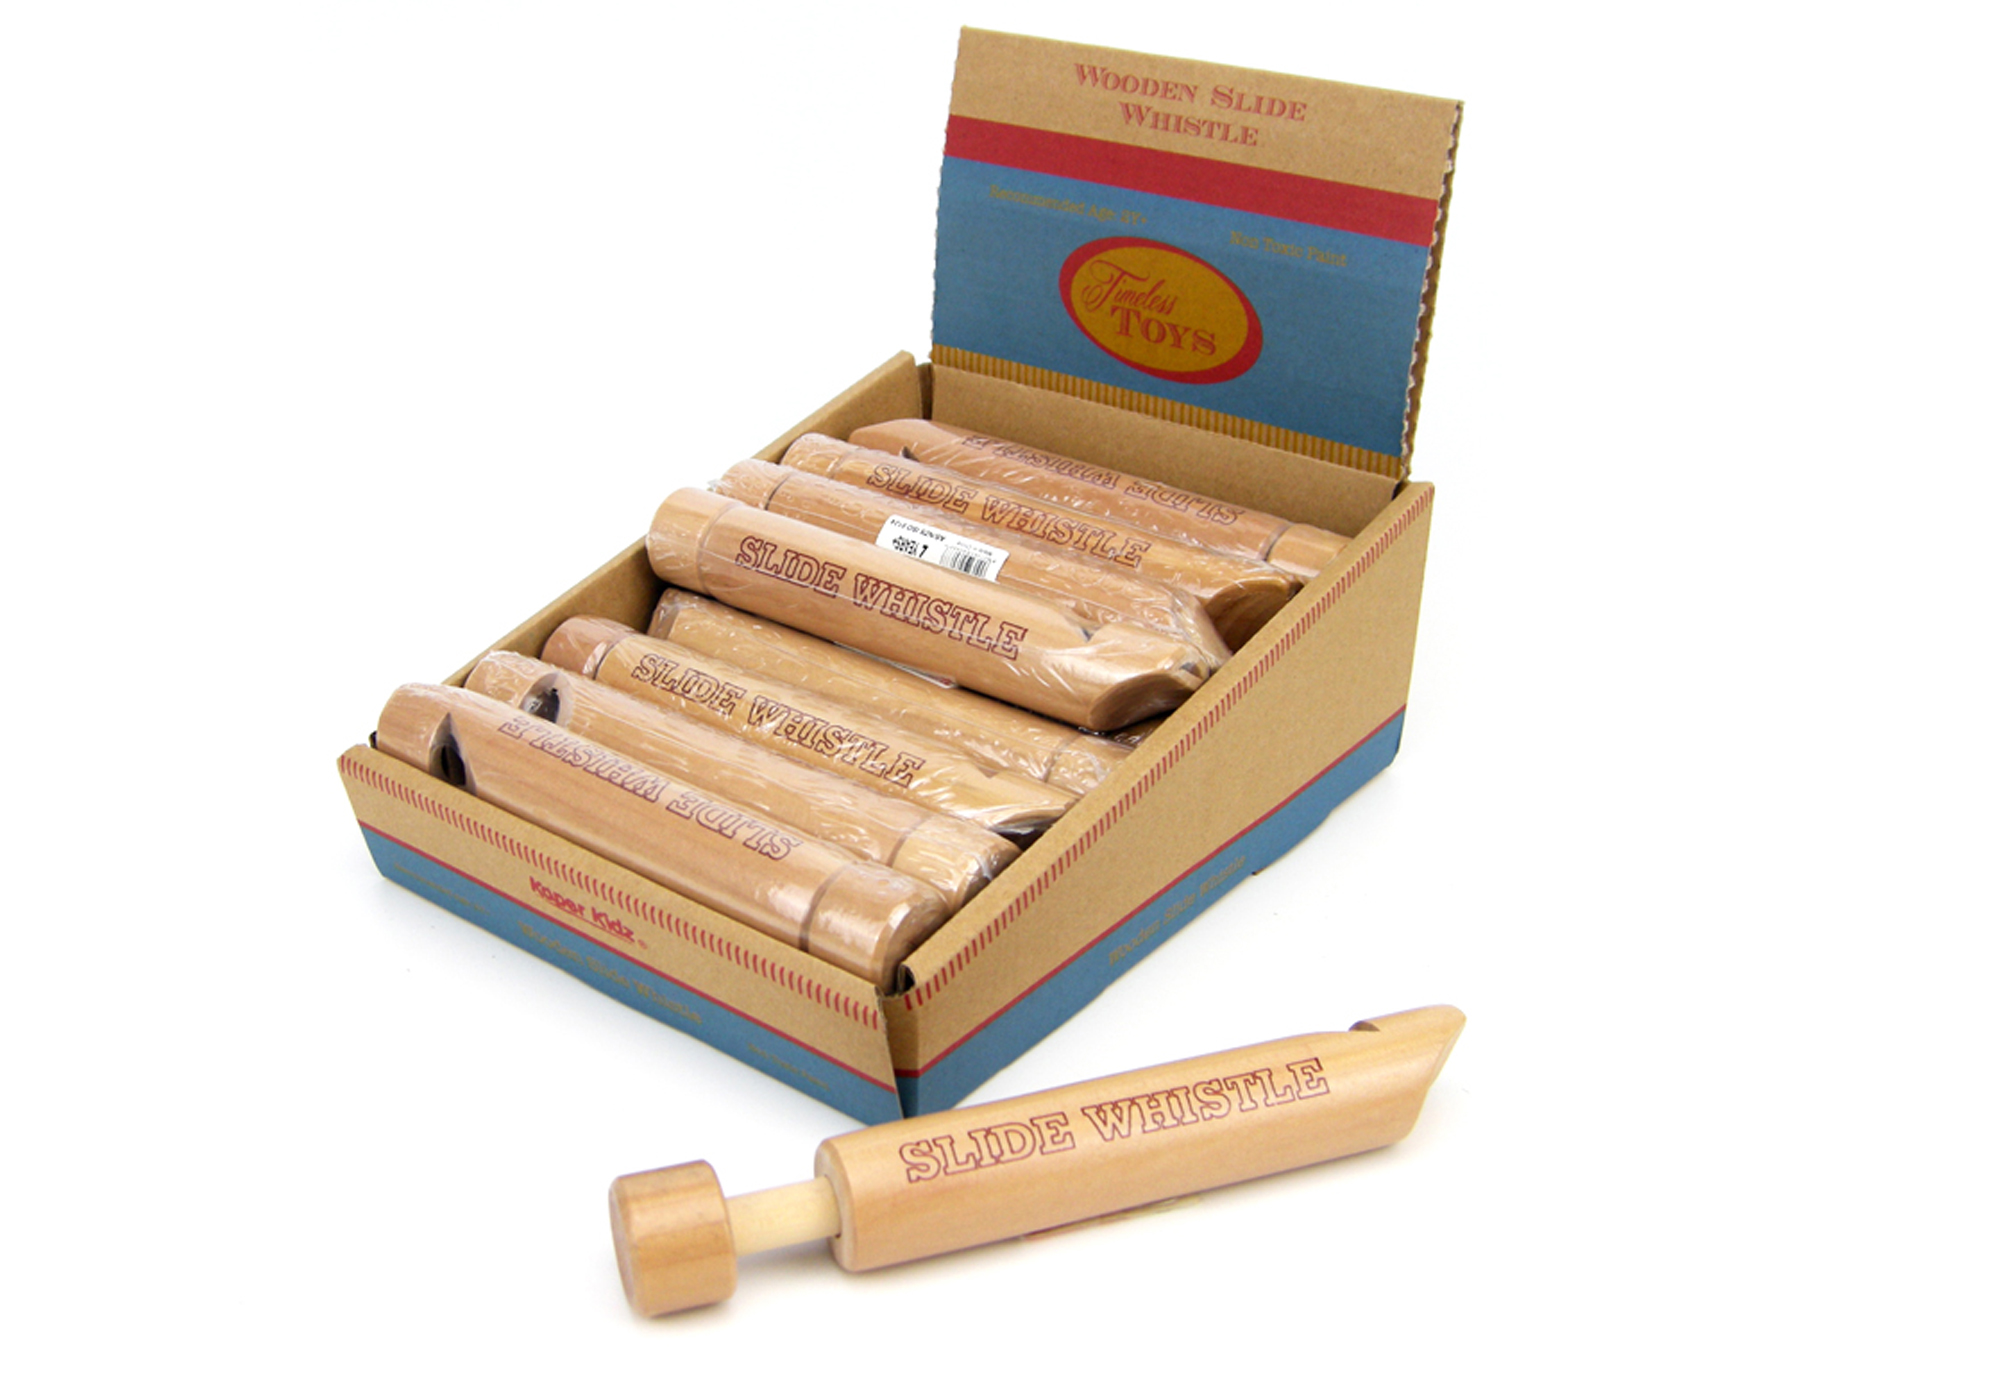 Wooden Slide whistle